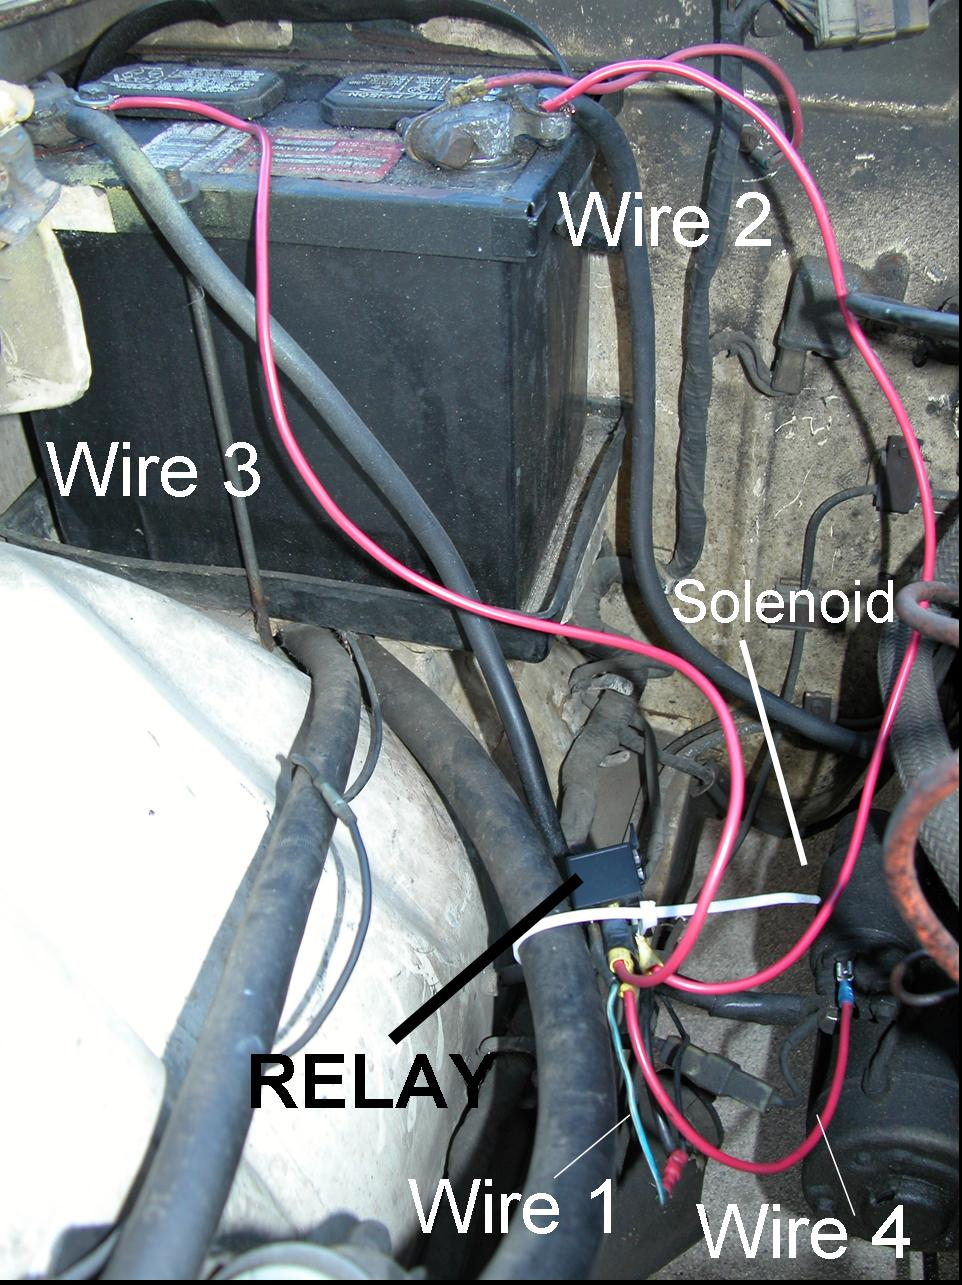 Addition of a Relay to a 240Z Starter System on 4 pin micro relay, 4 pin relay harness, 4 pin power relay, 4 pin relay sockets, 4 pin relay operation, 4 pin relay lighting, 4 pin relay terminals, 4 pin switch circuit diagram, 4 pin relay testing, 4 pin relay with pigtail, 4 pin to 5 pin harness, 4 pin relay wire, 4 pin headers, 4 pin horn relay, 4 pin relay connector, 4 pin toggle switch, 4 pin fuel relay,